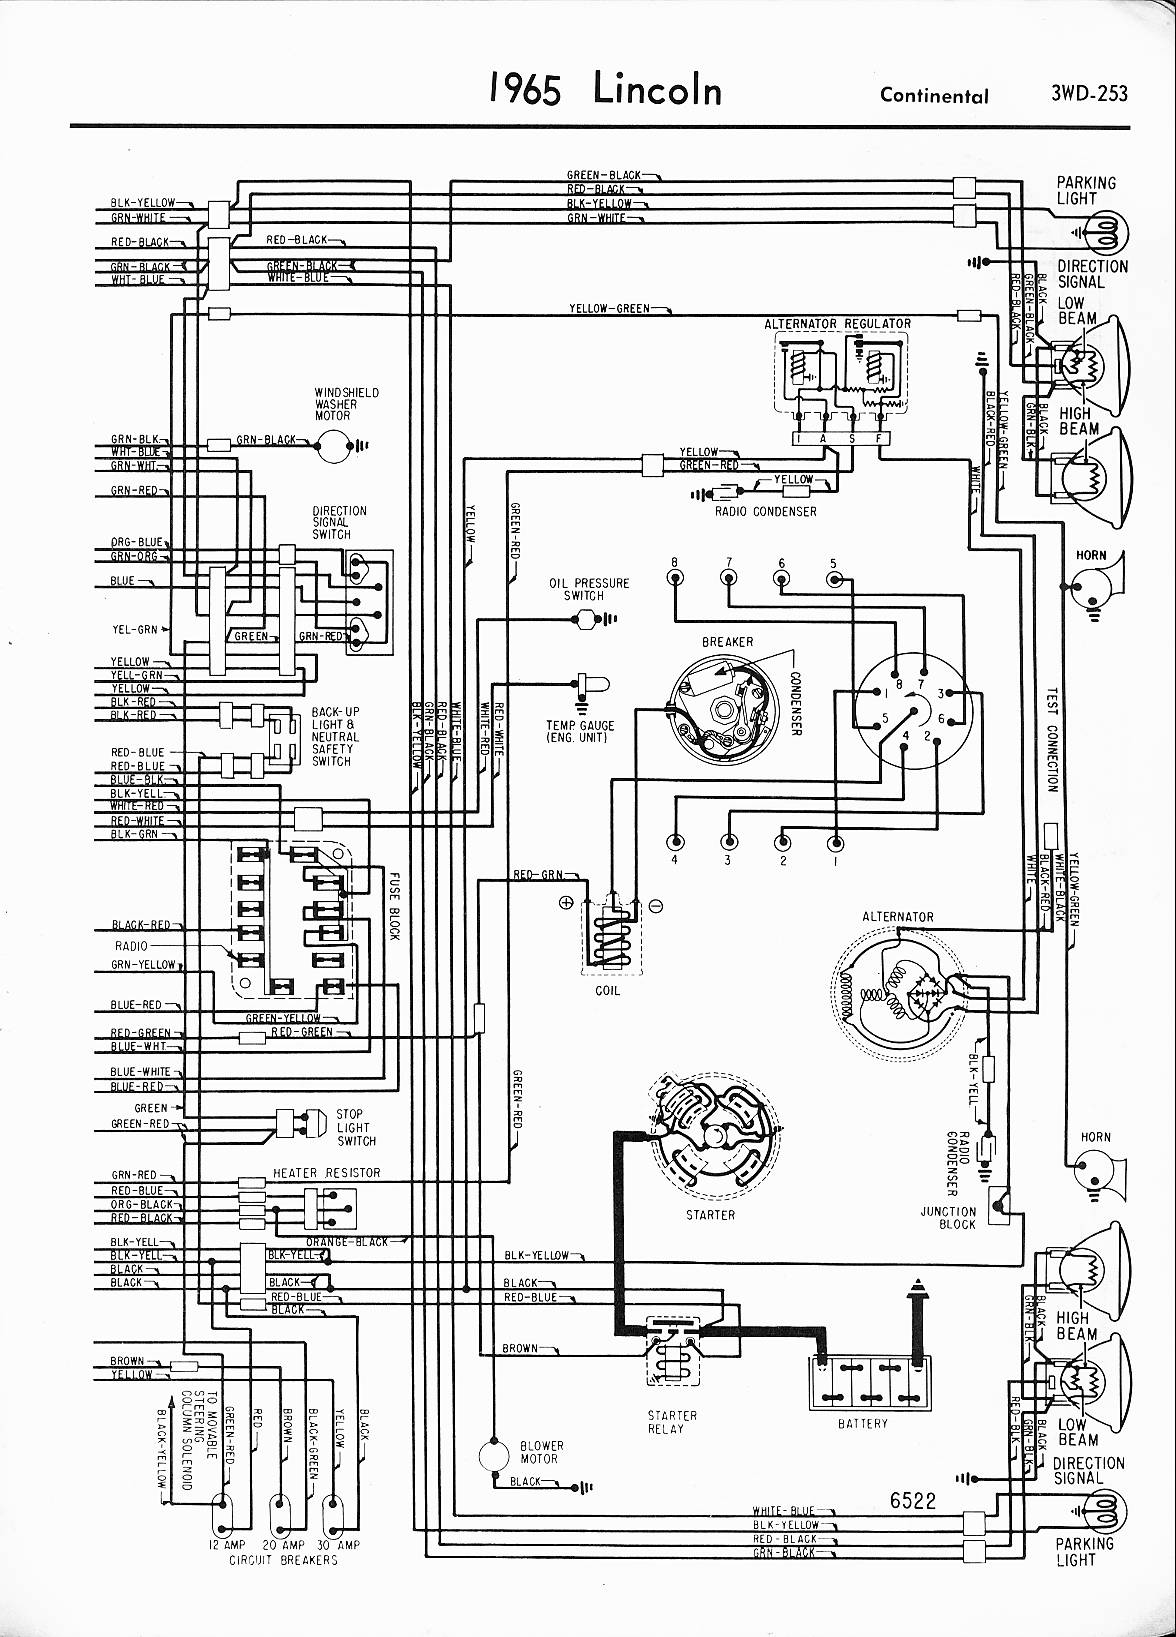 6qmnh Chevrolet Caprice Classic Broughm Need Diagram Fuse Box likewise 1972 Chevelle Horn Relay Wiring Diagram also 1967 Cougar Turn Signal Wiring Diagram besides 2hyy5 Need Exploded View Assembly Tilt Wheel Steering together with Watch. on 1969 corvette horn relay location